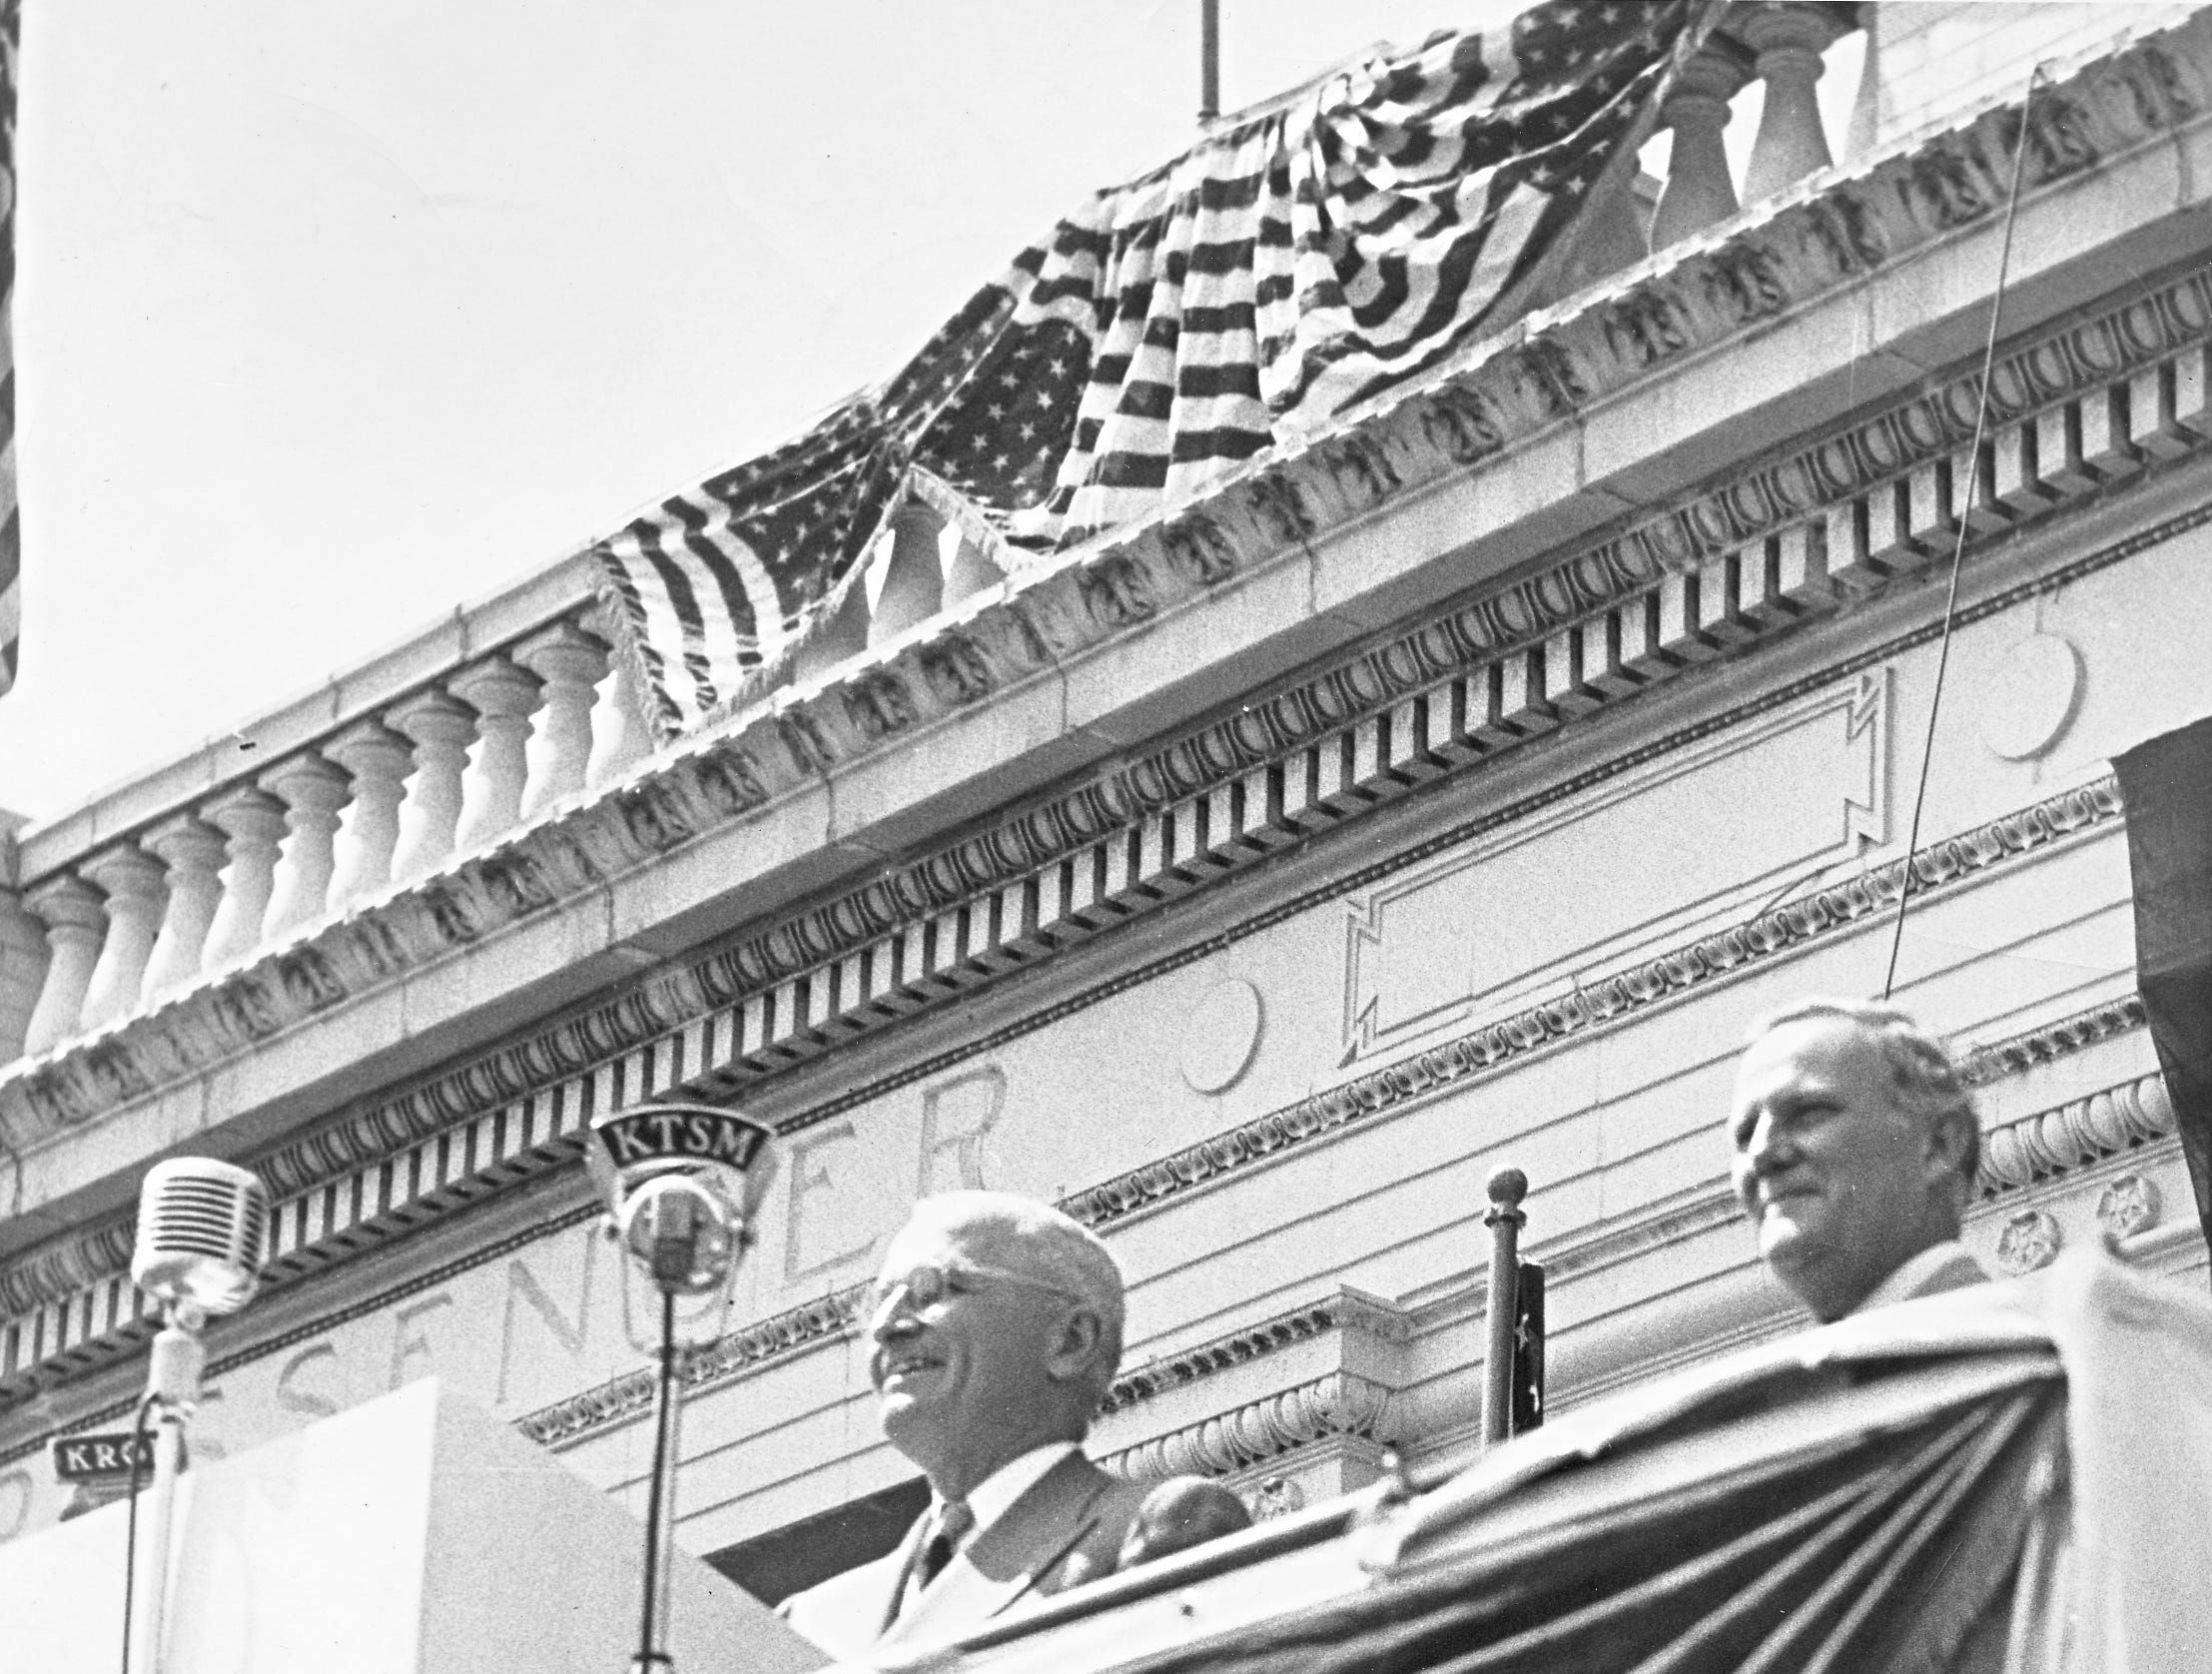 09/26/1948 PRESIDENT ADDRESSES EL PASOANS - President Truman, bringing his campaign tour to Texas, speaks from the flag decked platform installed in front of Union Depot. He just introduced Gov. Beauford Jester (right).